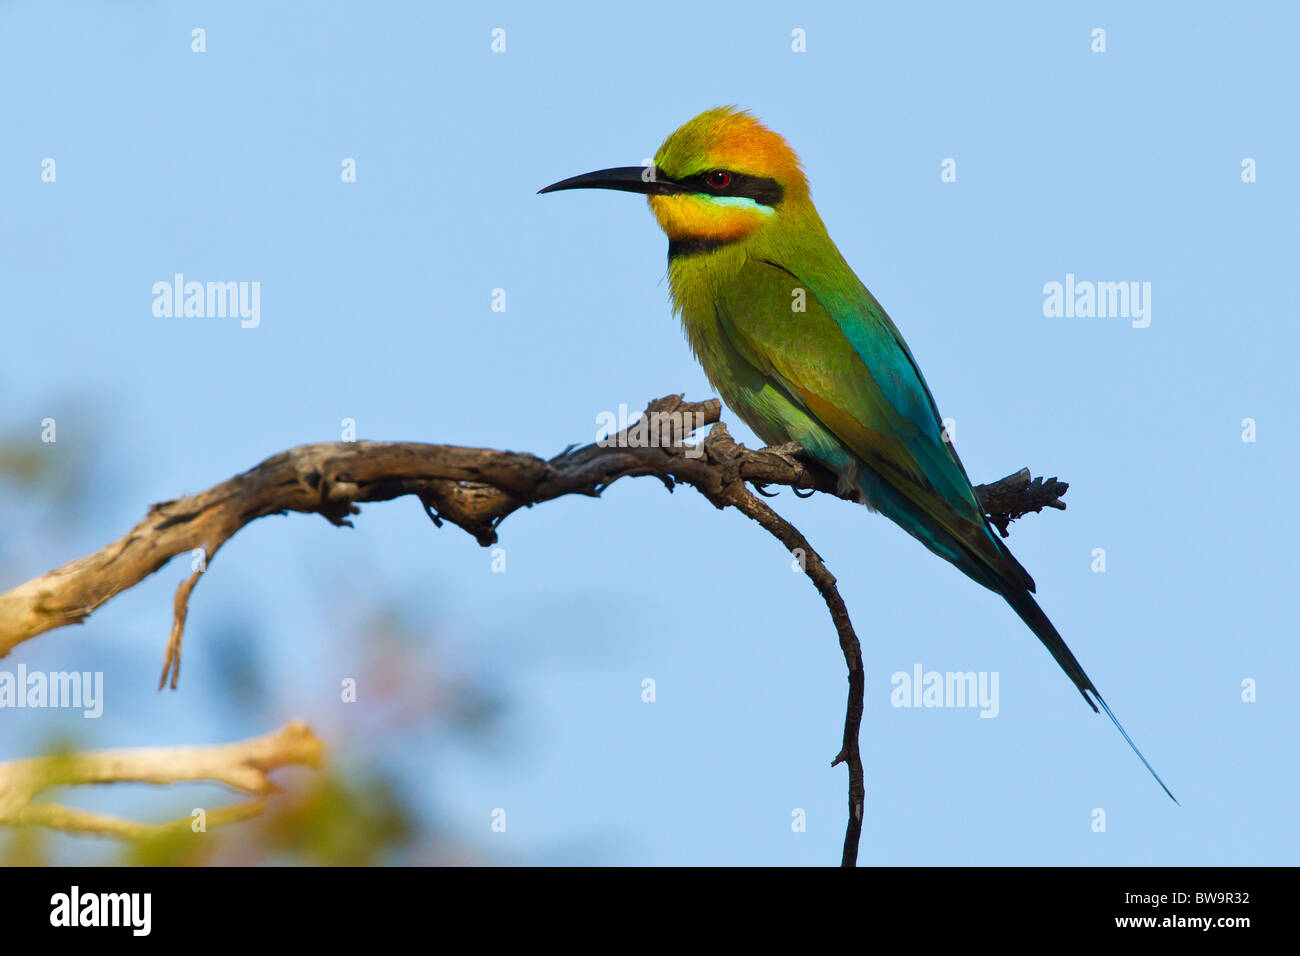 RAINBOW BEE-EATER PERCHED ON A GNARLED BRANCH - Stock Image